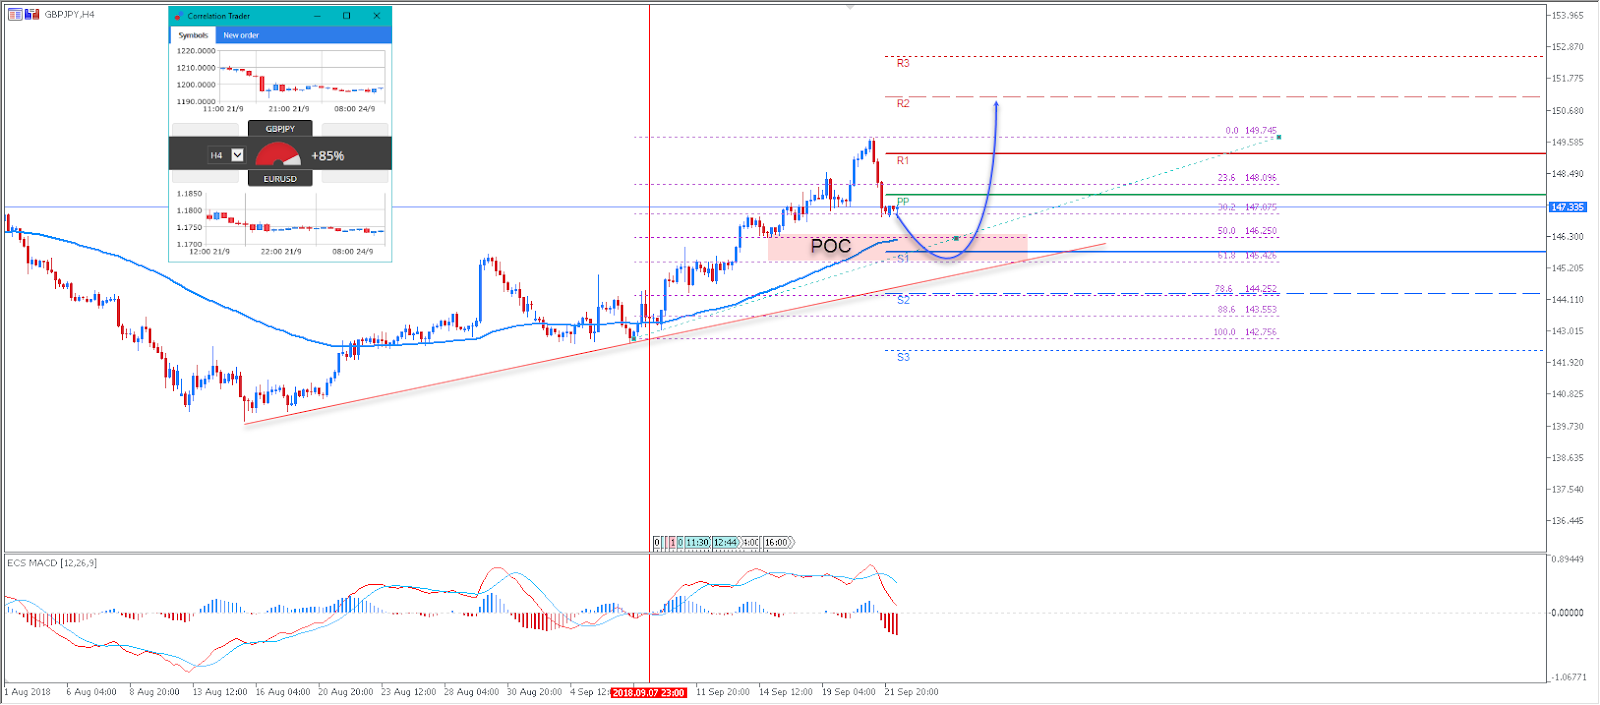 GBPJPY Technical Analysis